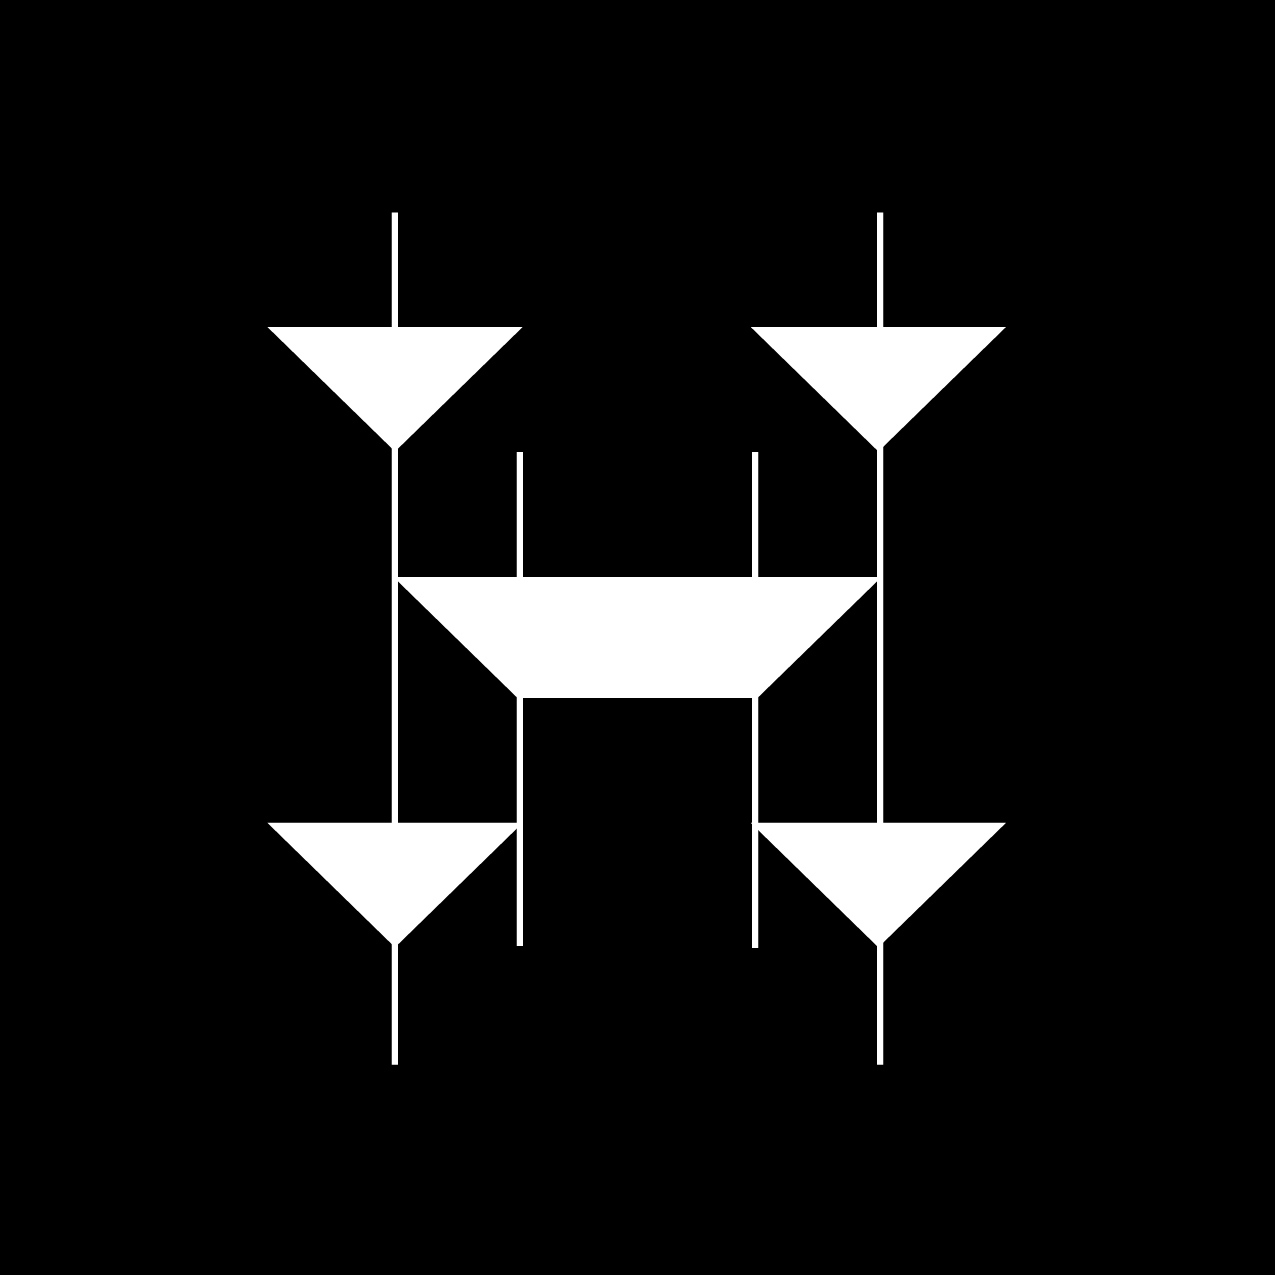 Letter H5 Design by Furia